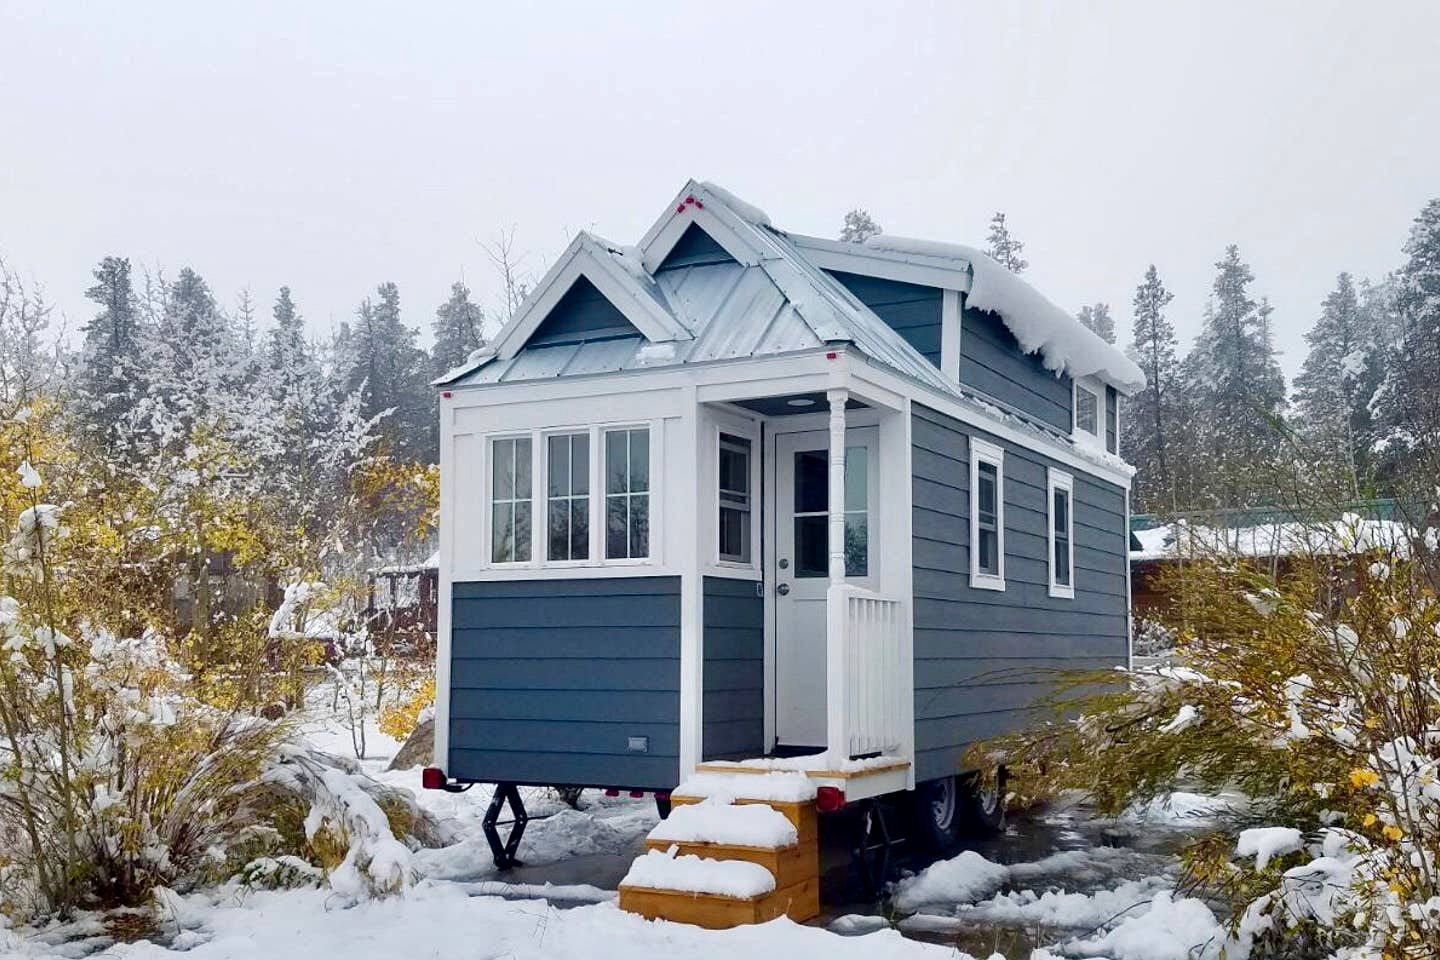 Gorgeous Tiny House Getaway for a Mountain Retreat in Fairplay, Colorado